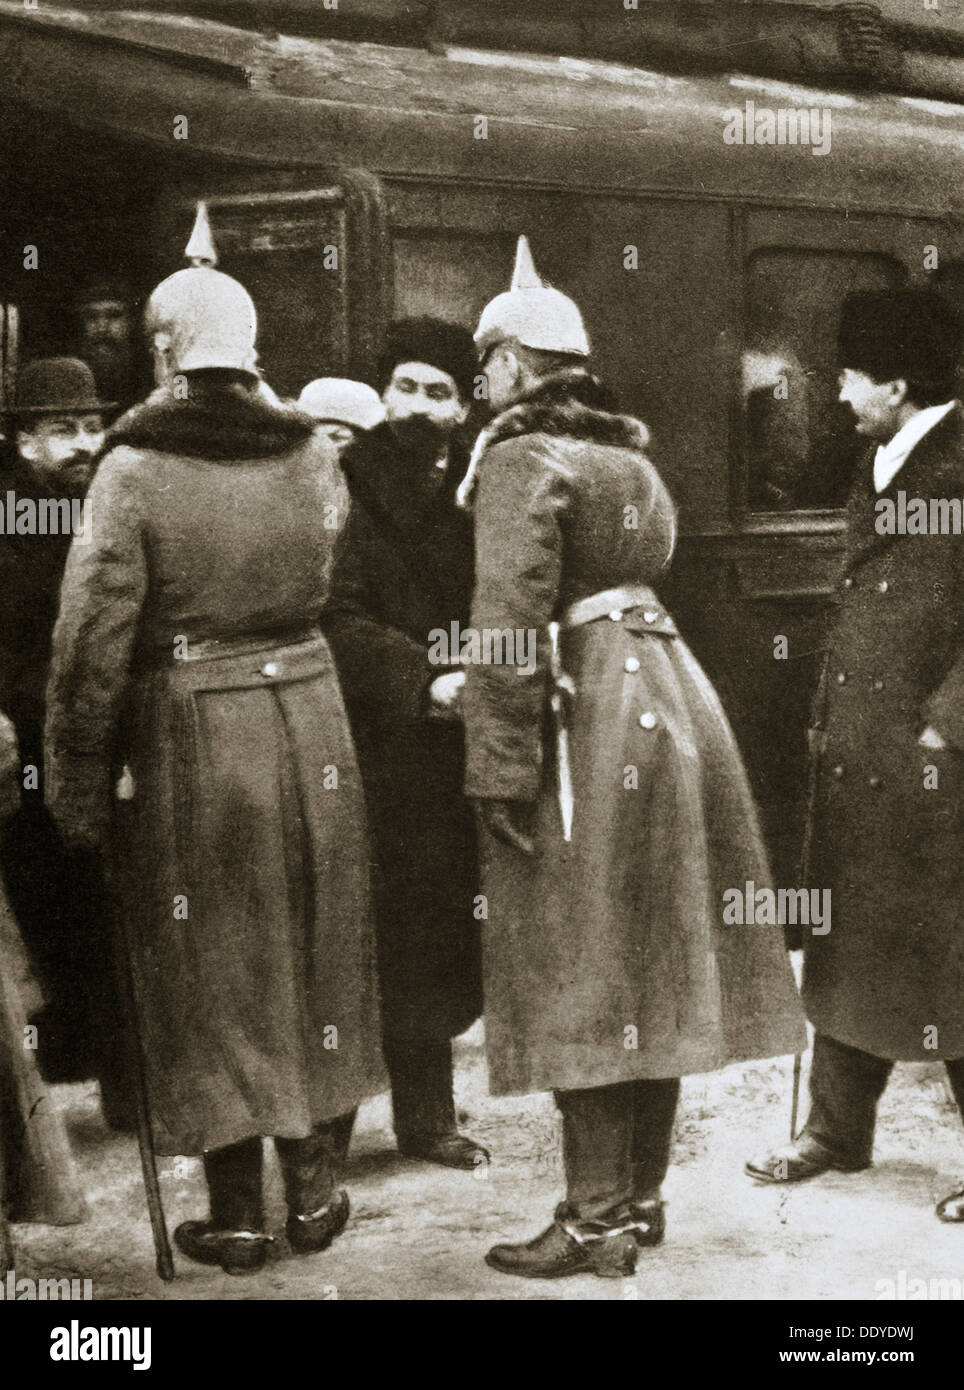 Trotsky and Russian delegates welcomed by German officers, Brest-Litovsk, Russia, 1917. Artist: Unknown - Stock Image